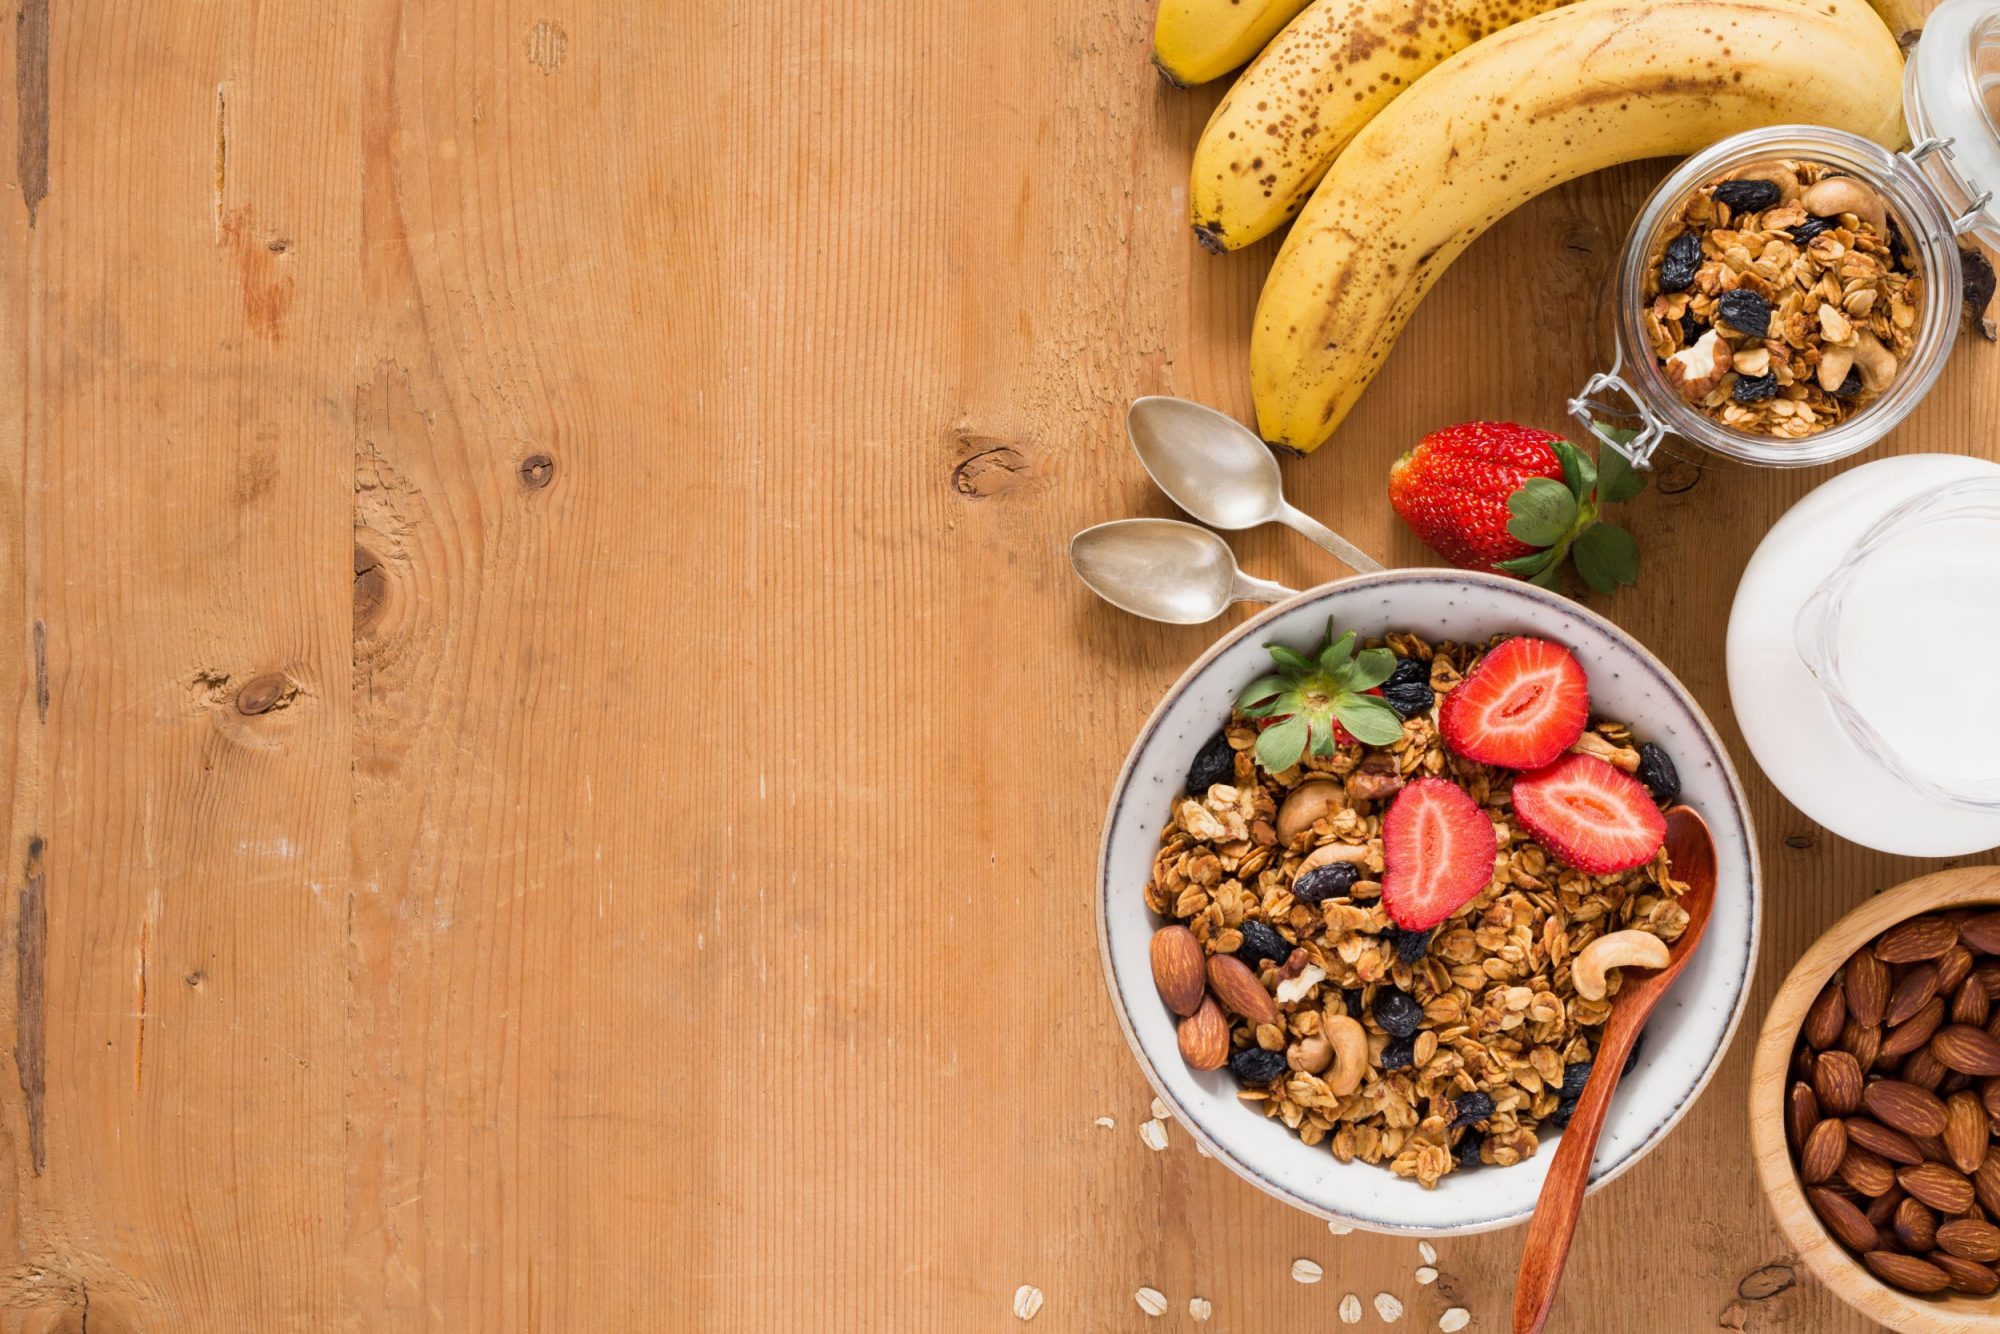 Granola, fruits and milk for healthy breakfast